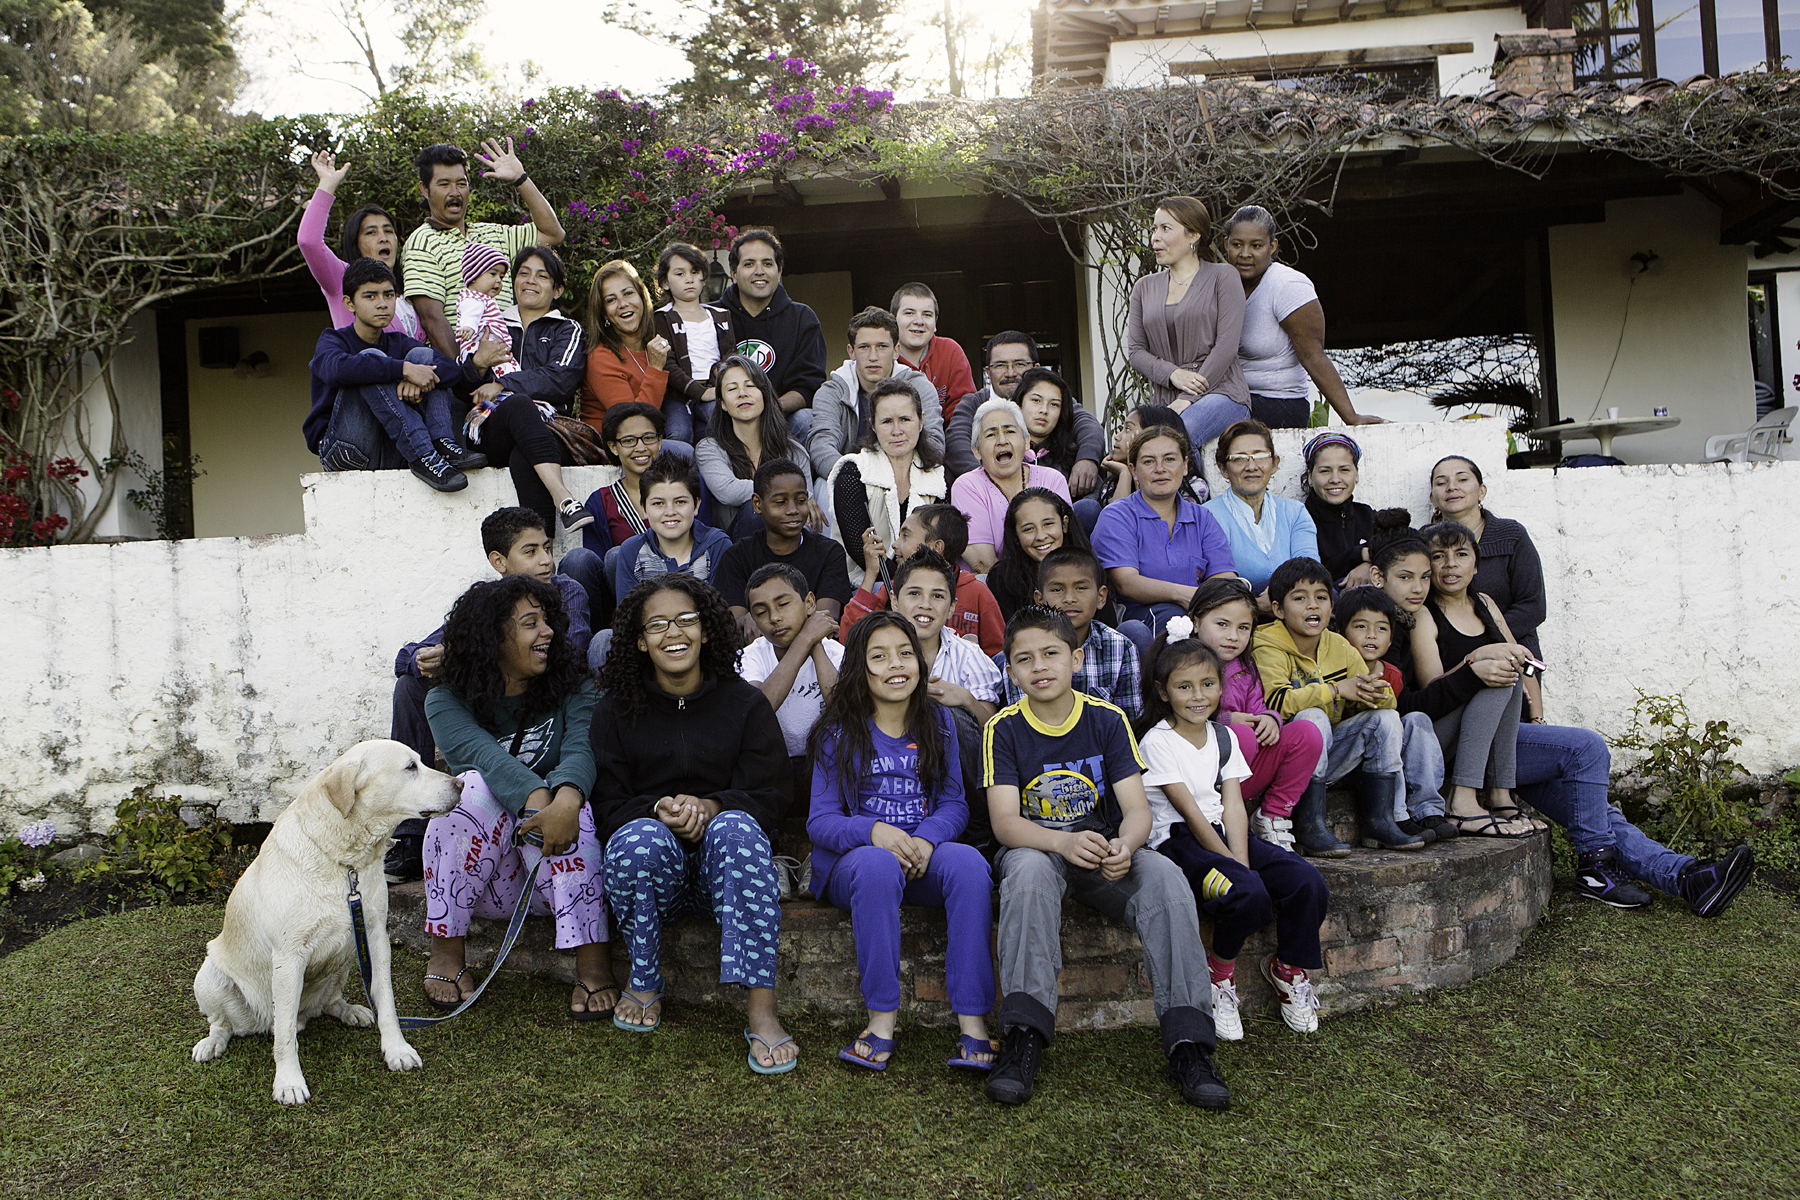 Stetson Shutterbugs and Grupo Flormoado members (with familes) in Villa del Leyva, August 2012